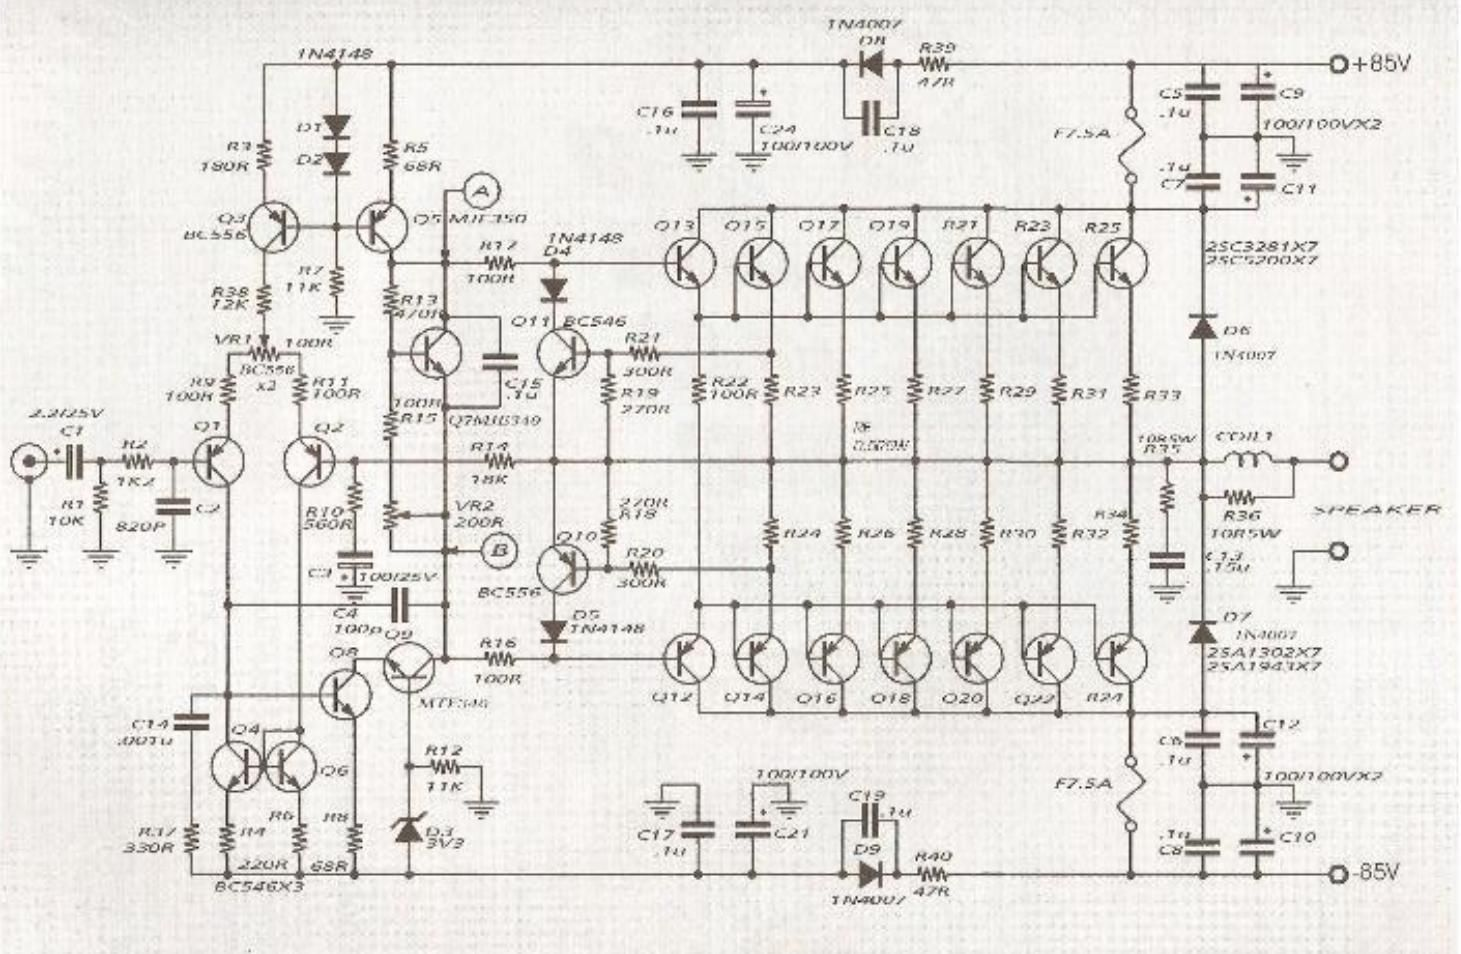 medium resolution of 5000 watts amplifier schematic diagrams wiring diagram description 5000 watt amplifier circuit diagram pdf 5000 watts amplifier circuit diagrams